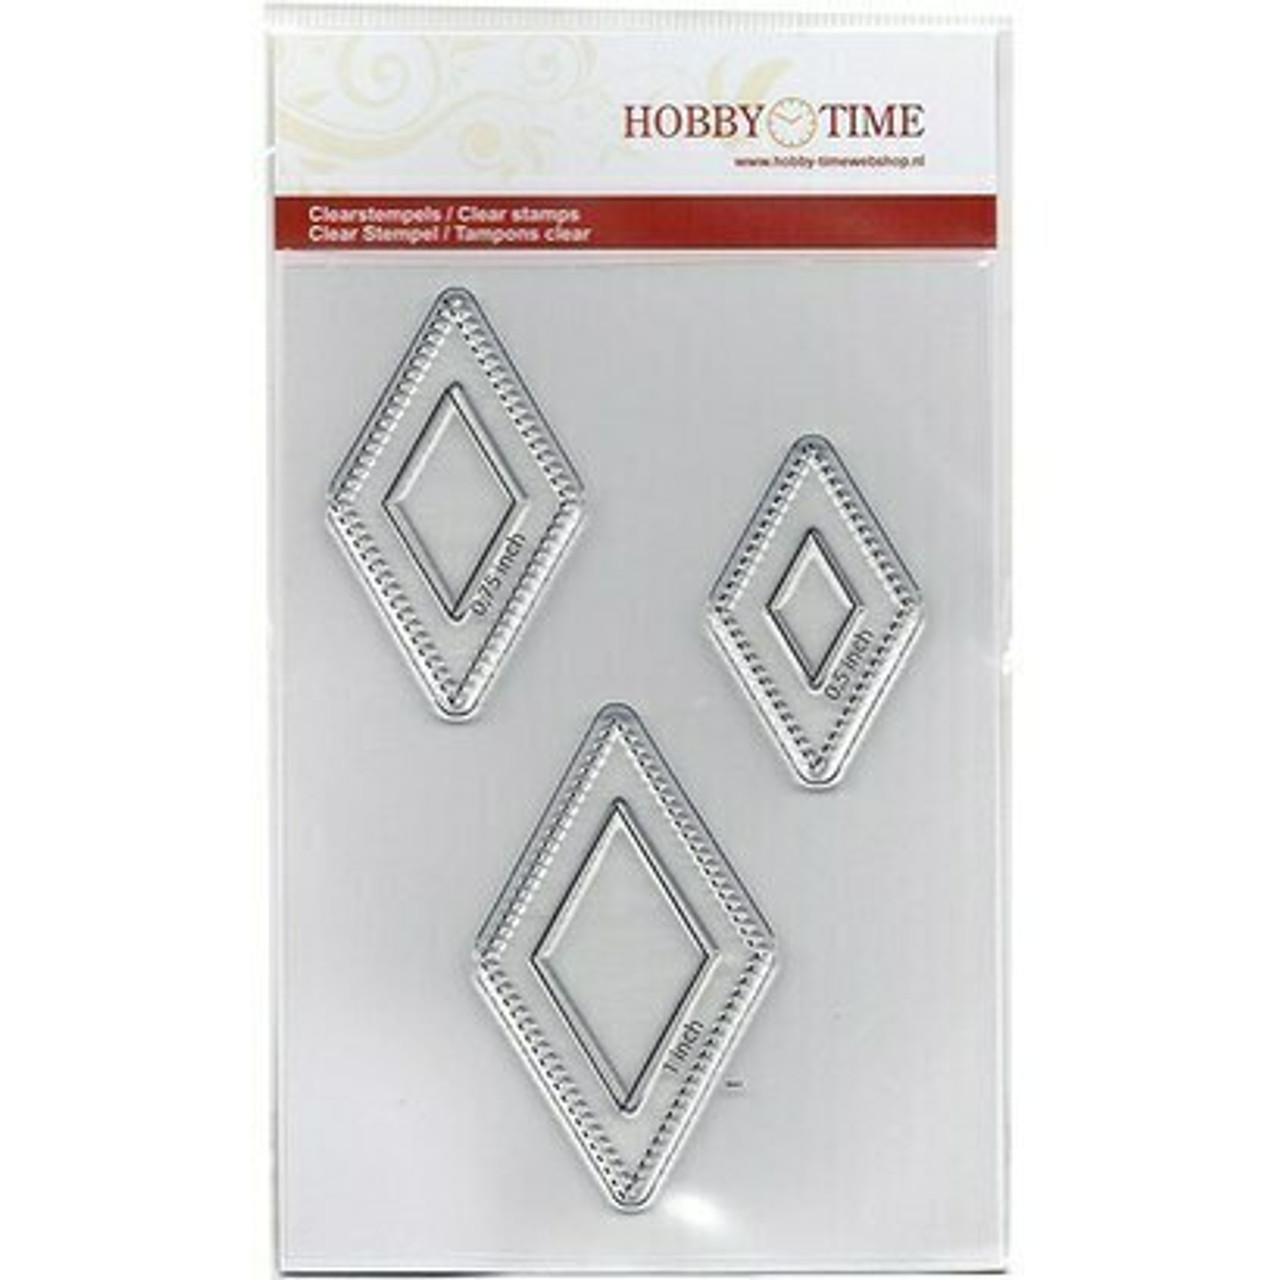 Hobby Time Six Point Star Stamp Set